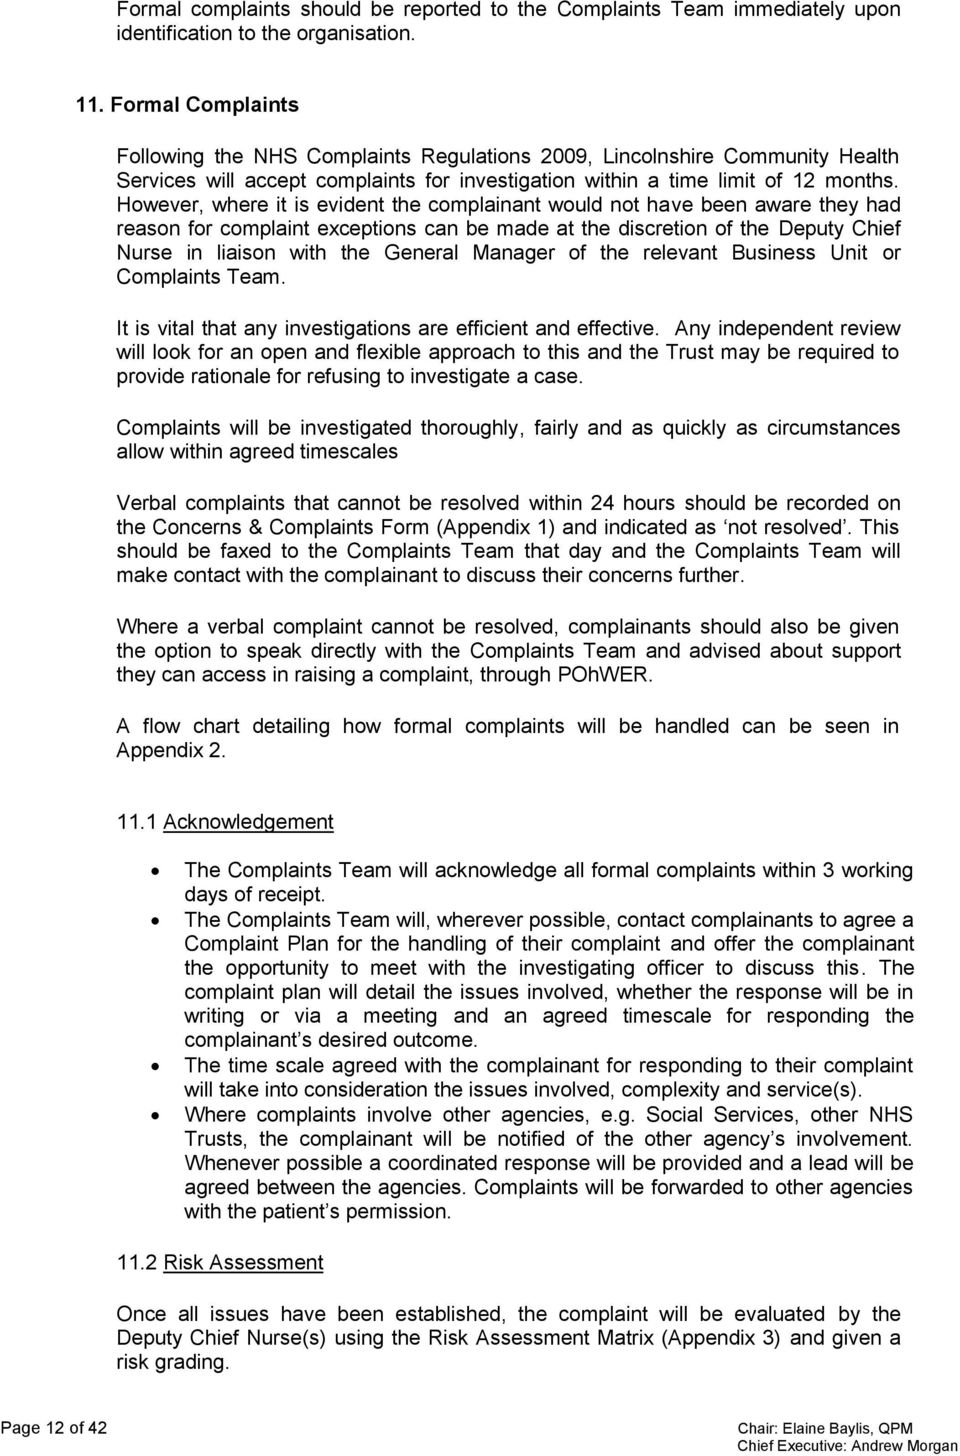 However, where it is evident the complainant would not have been aware they had reason for complaint exceptions can be made at the discretion of the Deputy Chief Nurse in liaison with the General